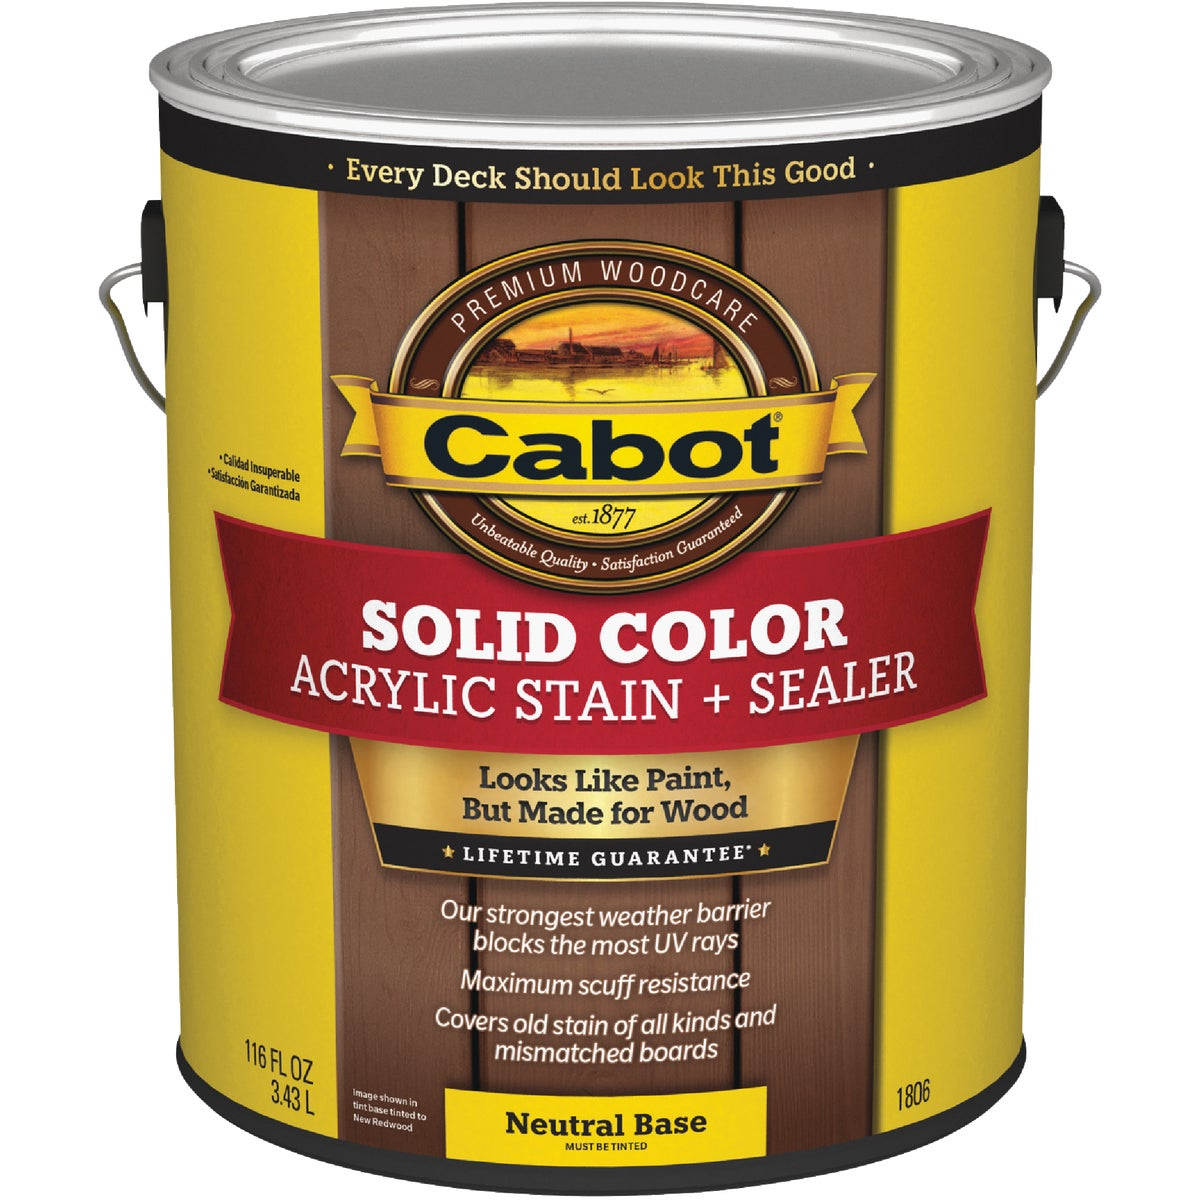 NEUT BS SOLID DECK STAIN - 140.0001806.007 by Valspar Corp